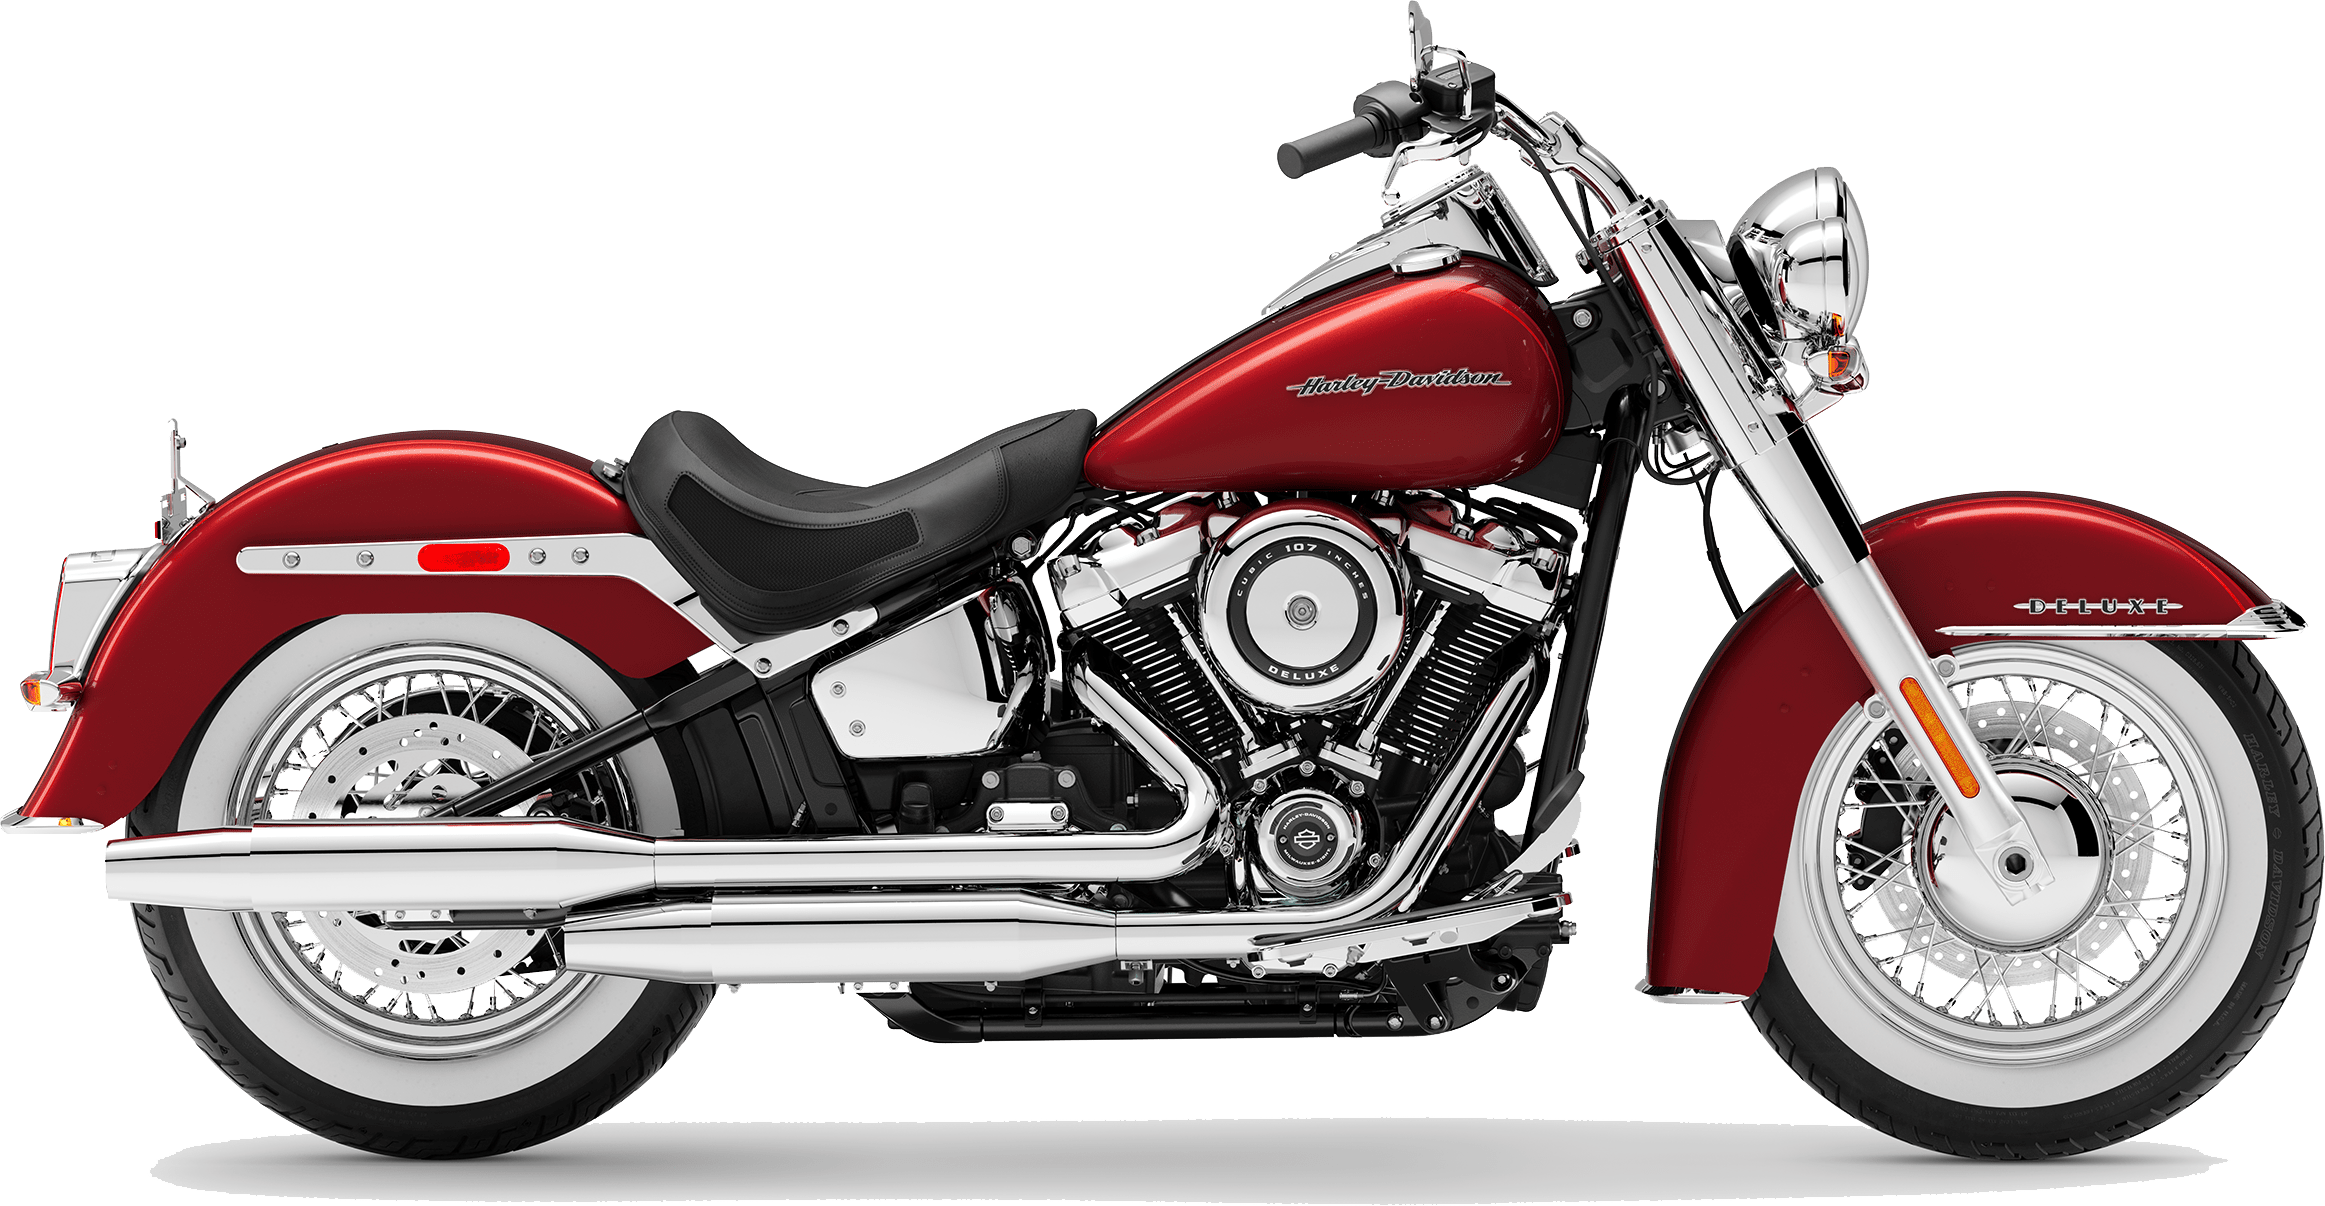 2019 Harley-Davidson Softail Fat Bob Wicked Red / Twisted Cherry